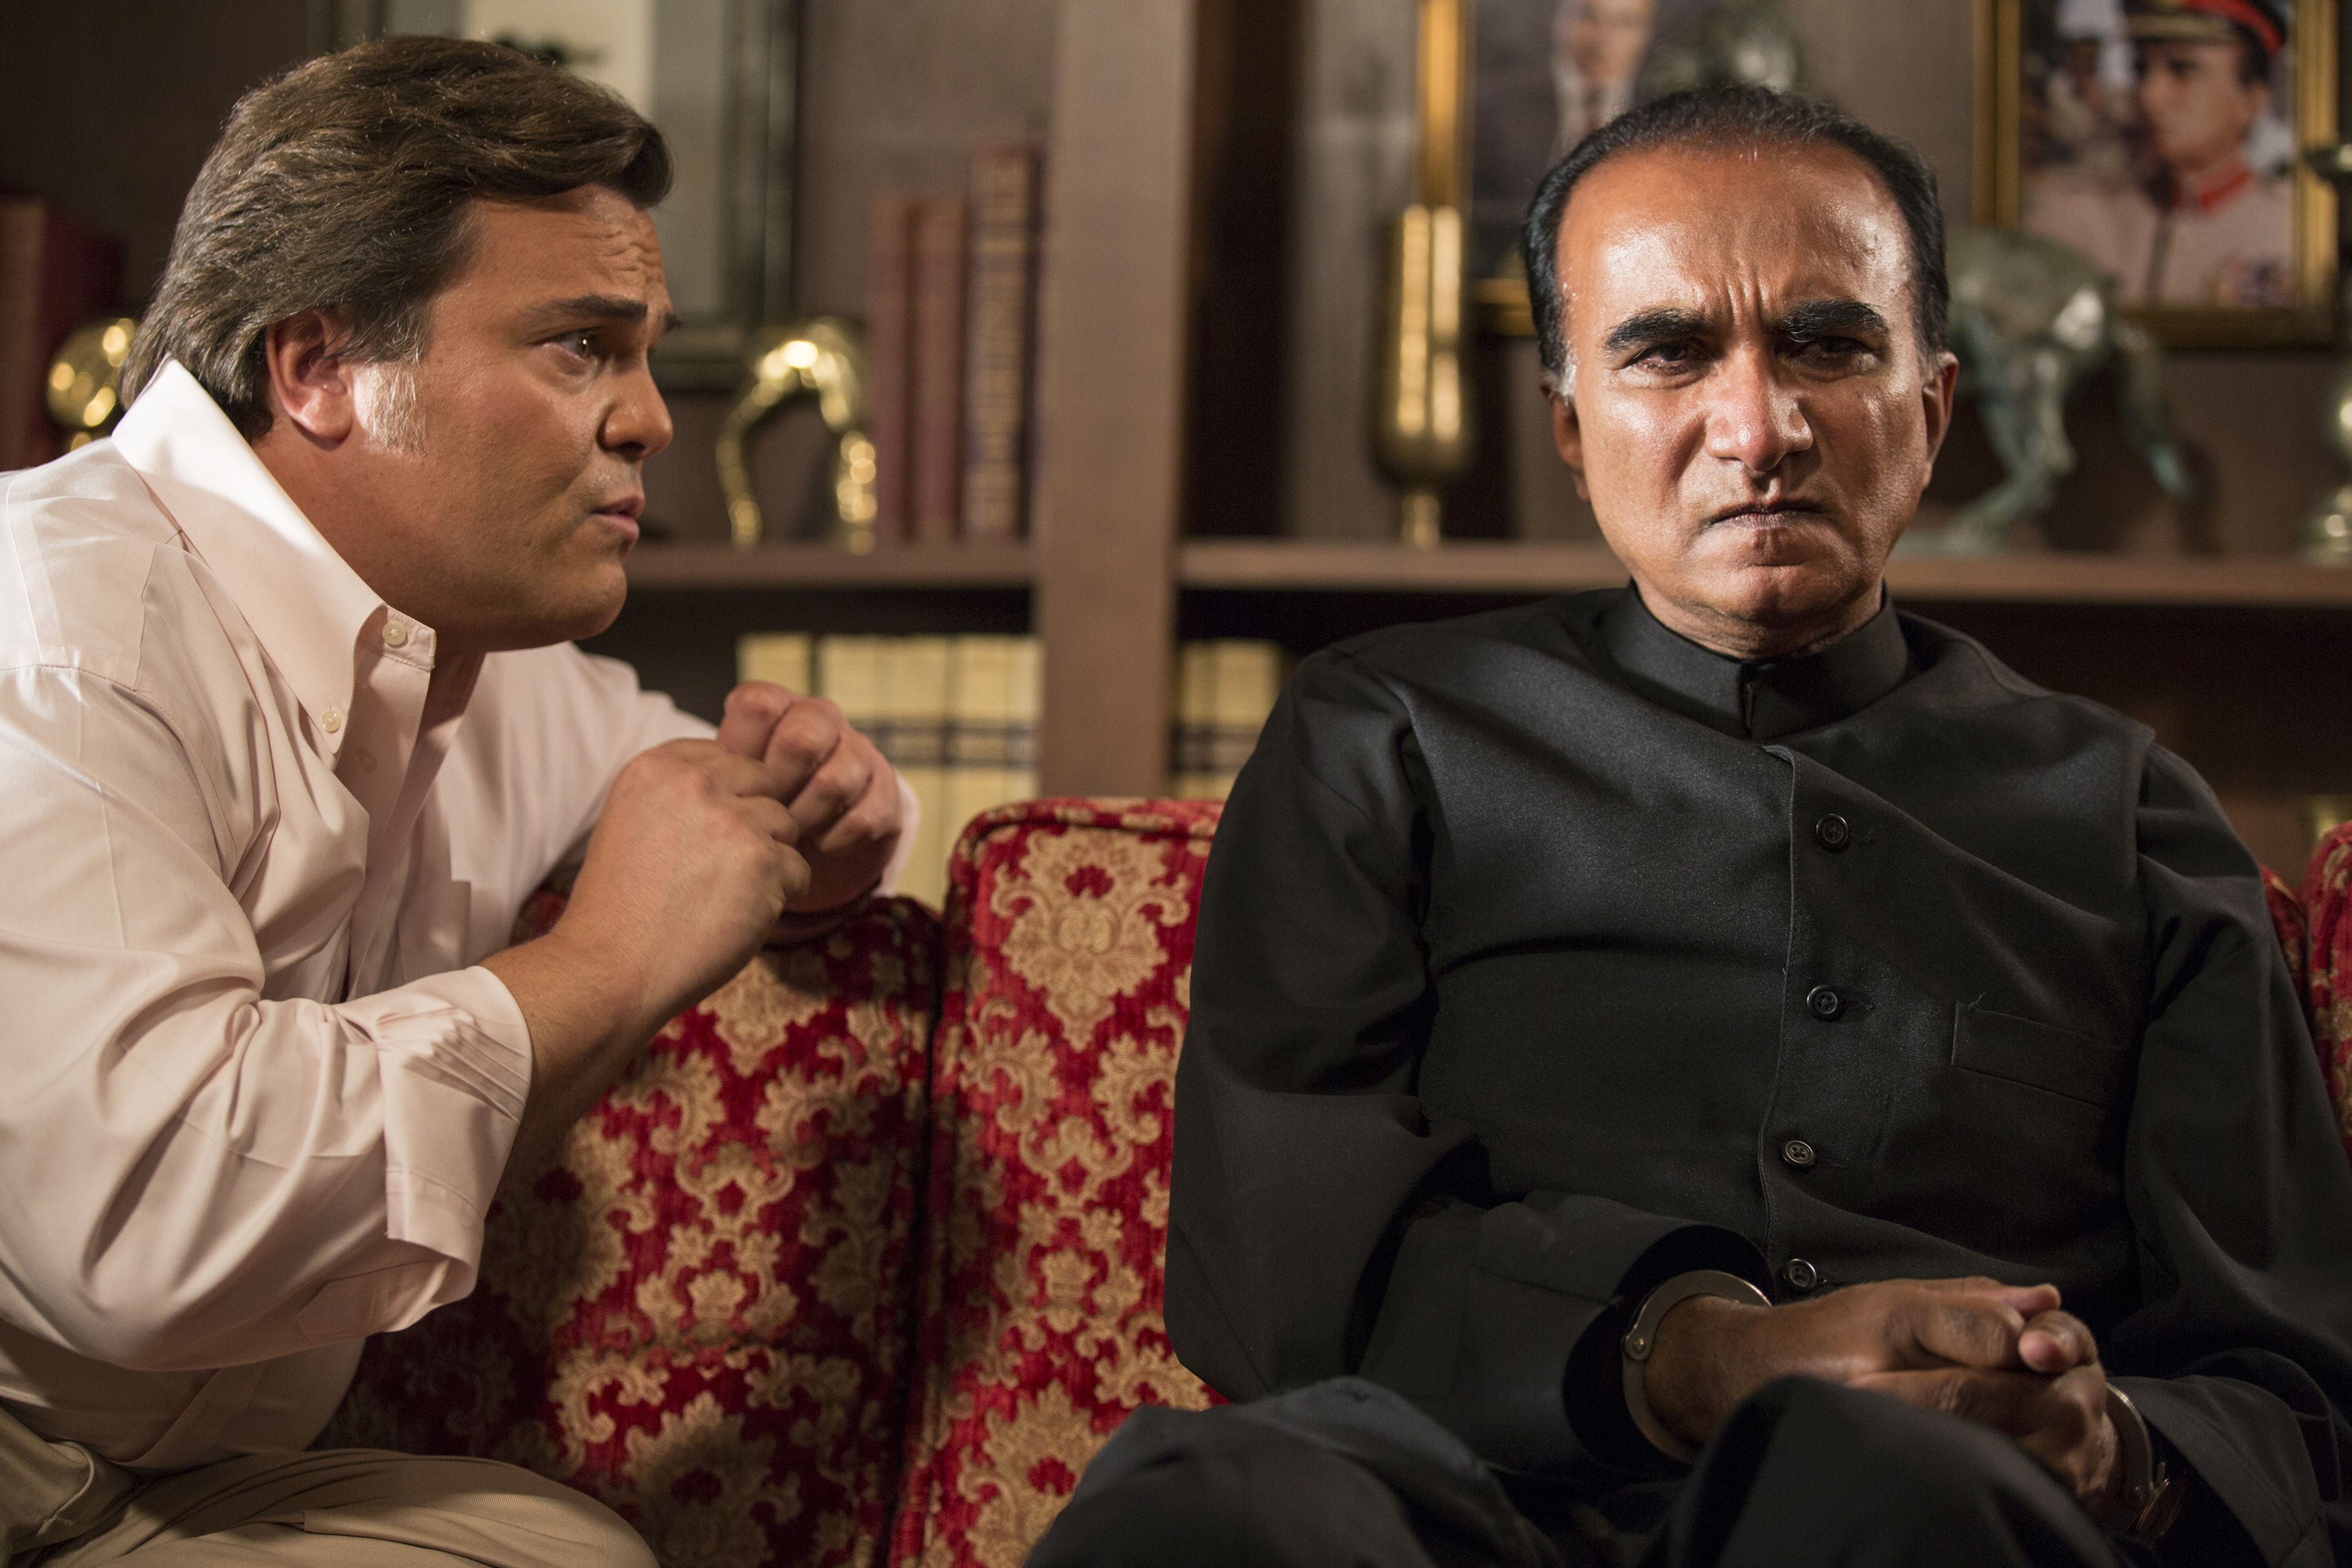 Jack Black and Iqbal Theba in the season finale of The Brink.